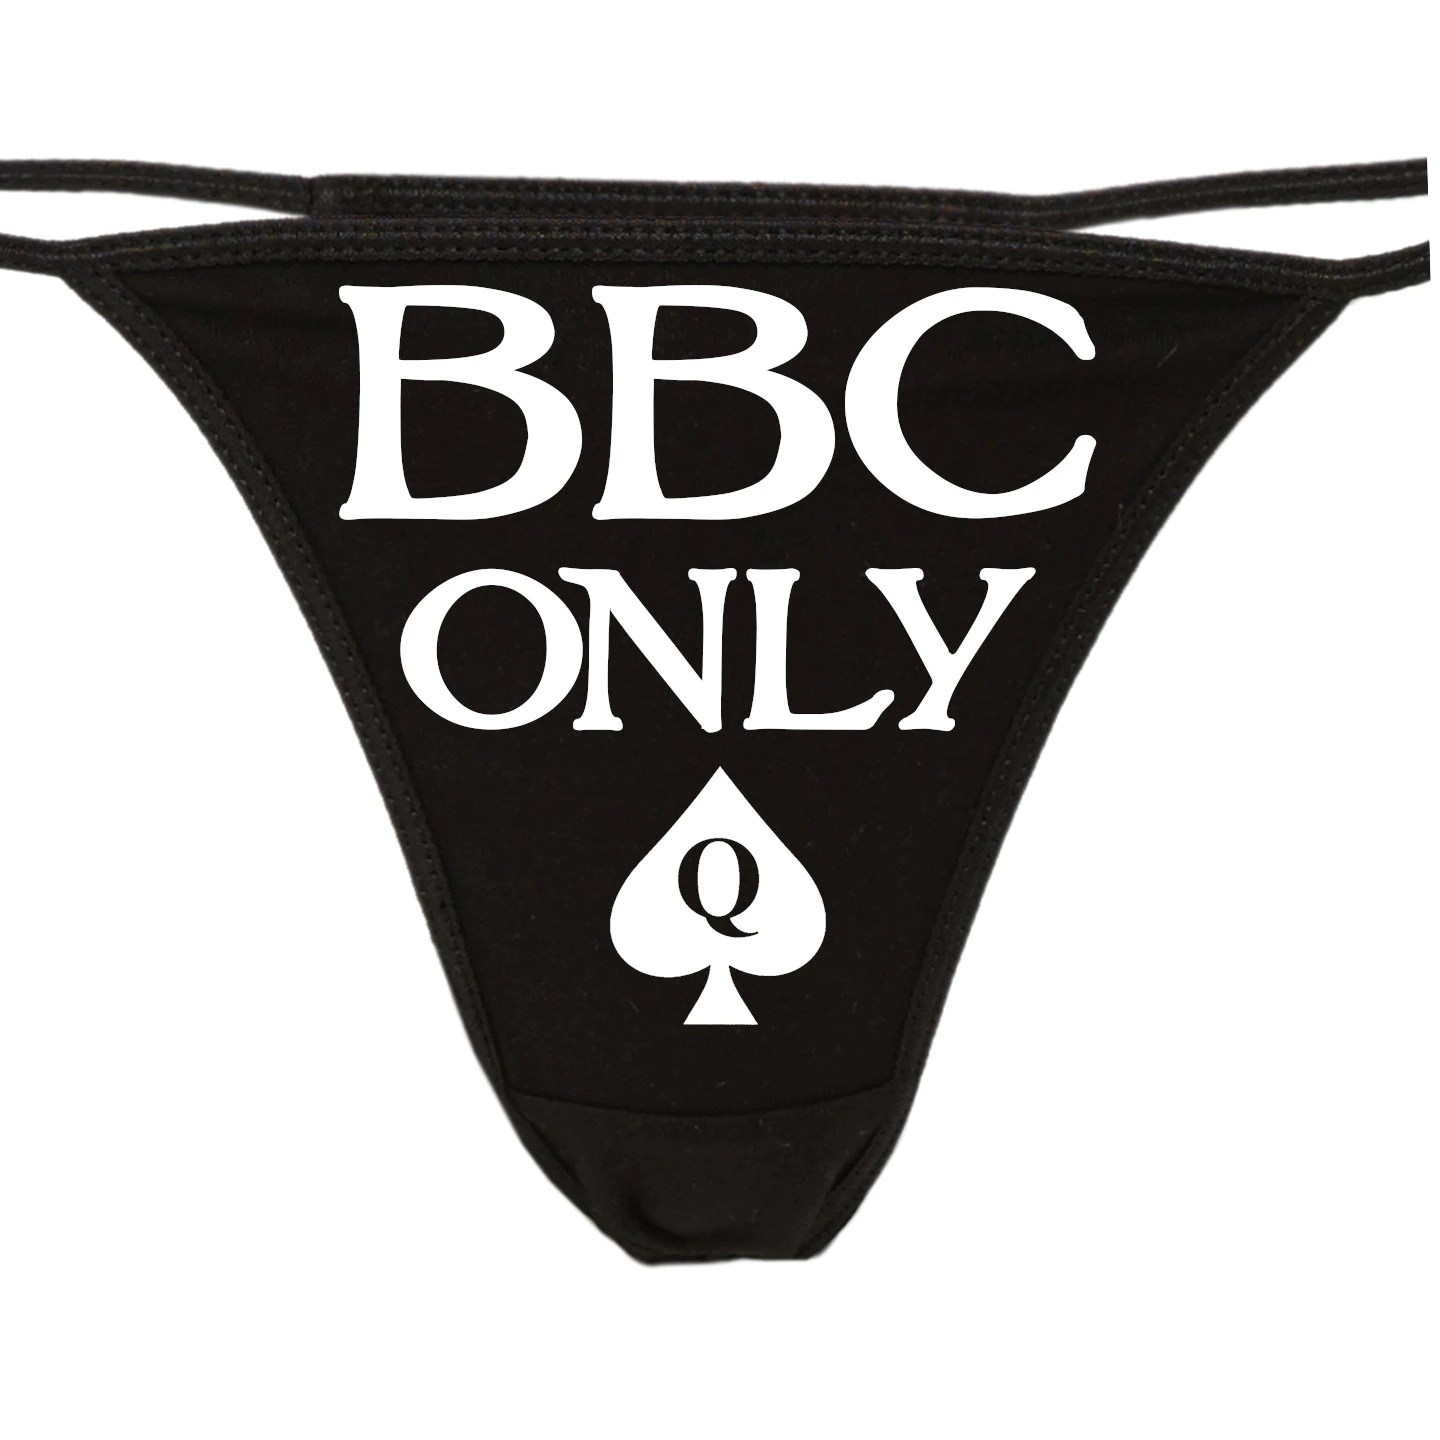 BBC ONLY Queen of Spades QofS logo on black thong lovers owned